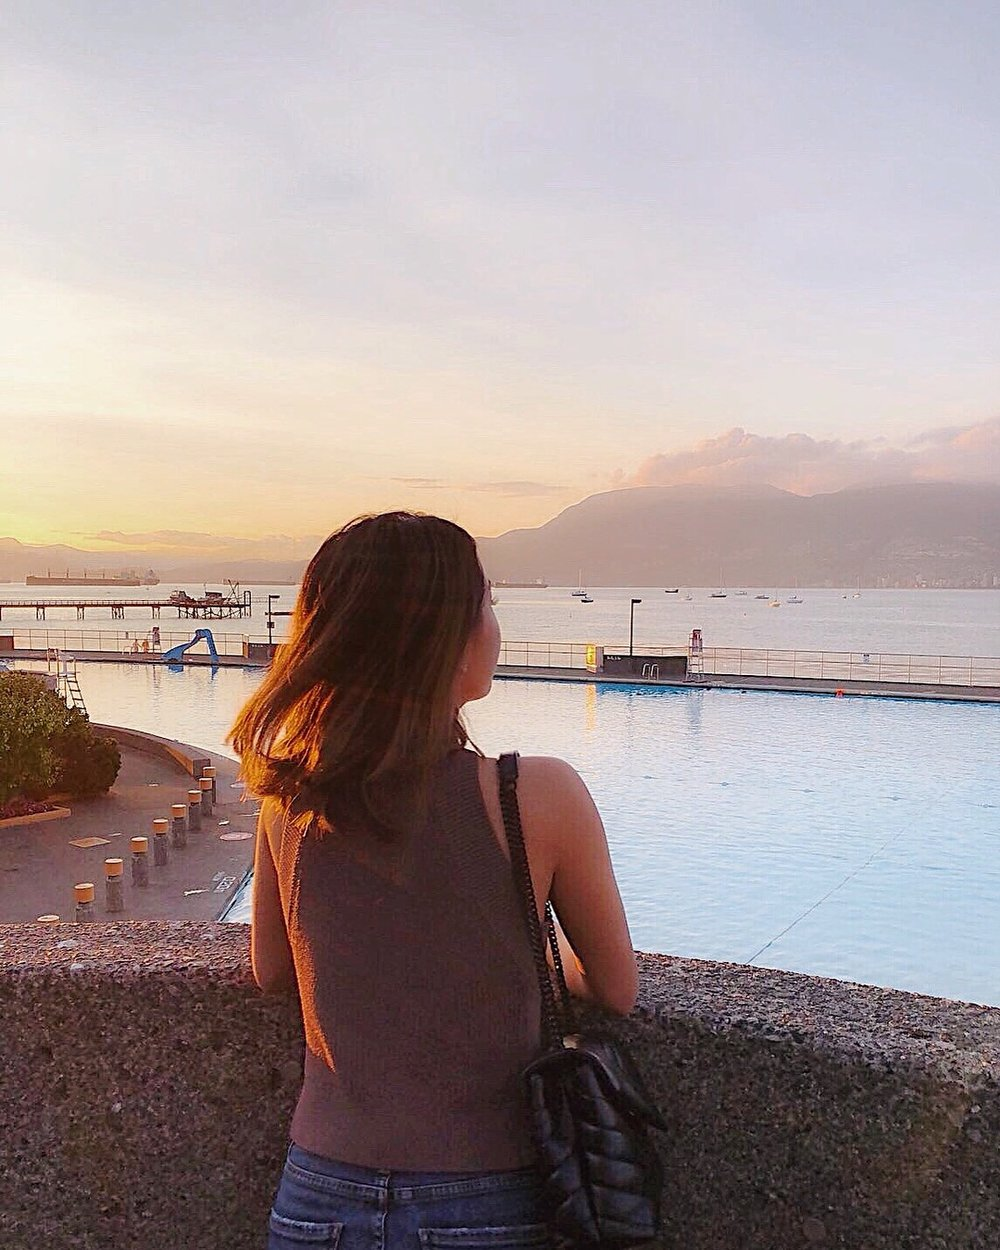 Soaking up a glorious sunset at Kitsilano Beach. Wearing Aritzia top, Agolde jeans and YSL bag.